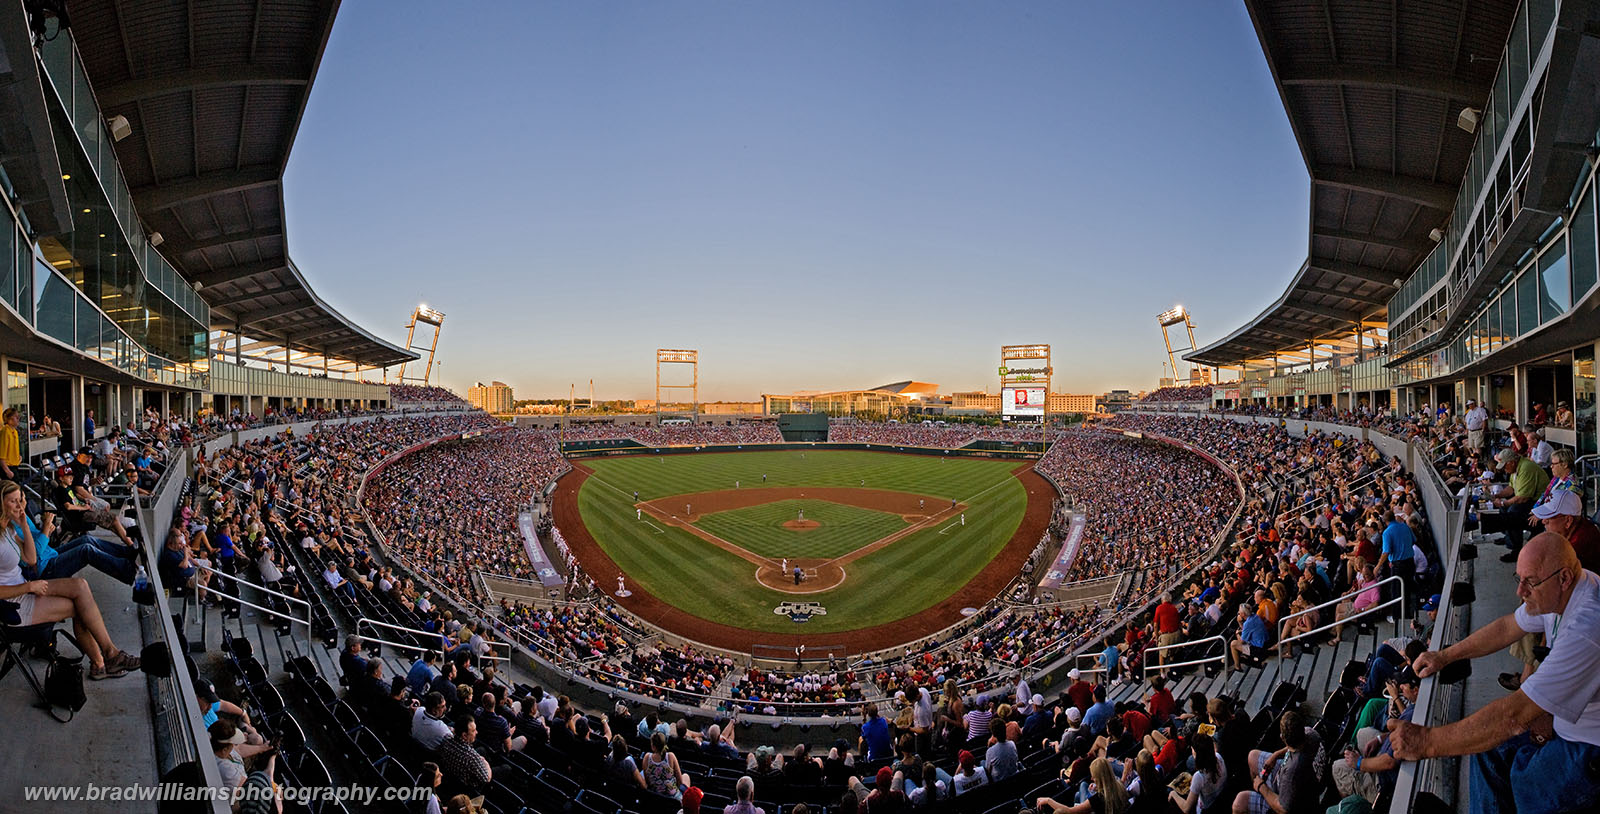 TD Ameritrade Park, Omaha, Nebraska, baseball, photo